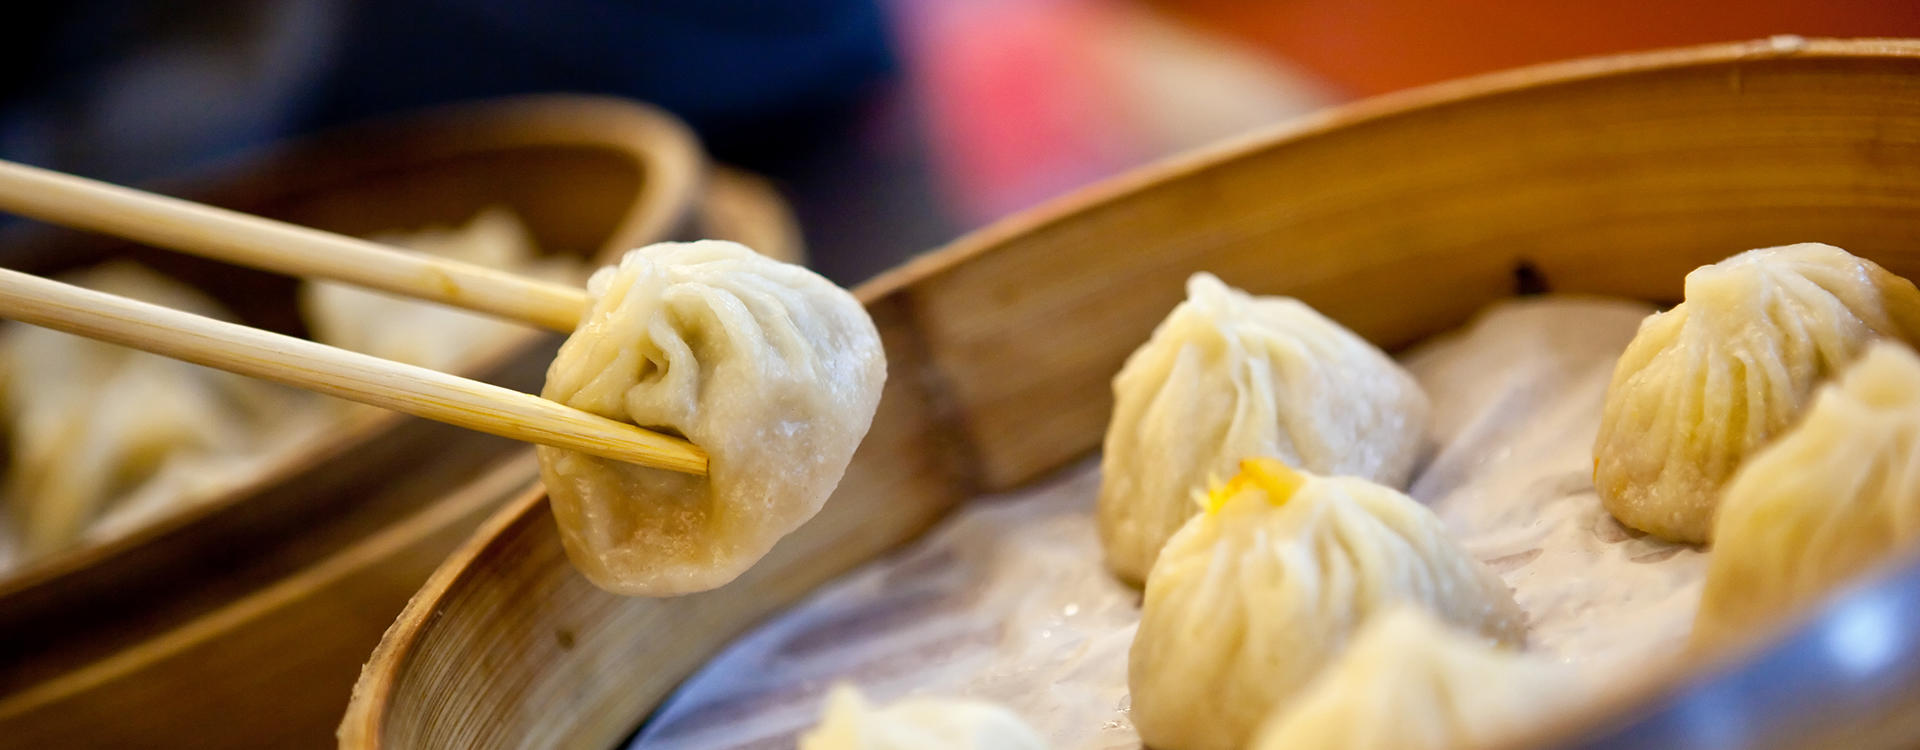 KI-Shenyang_Making-dumplings